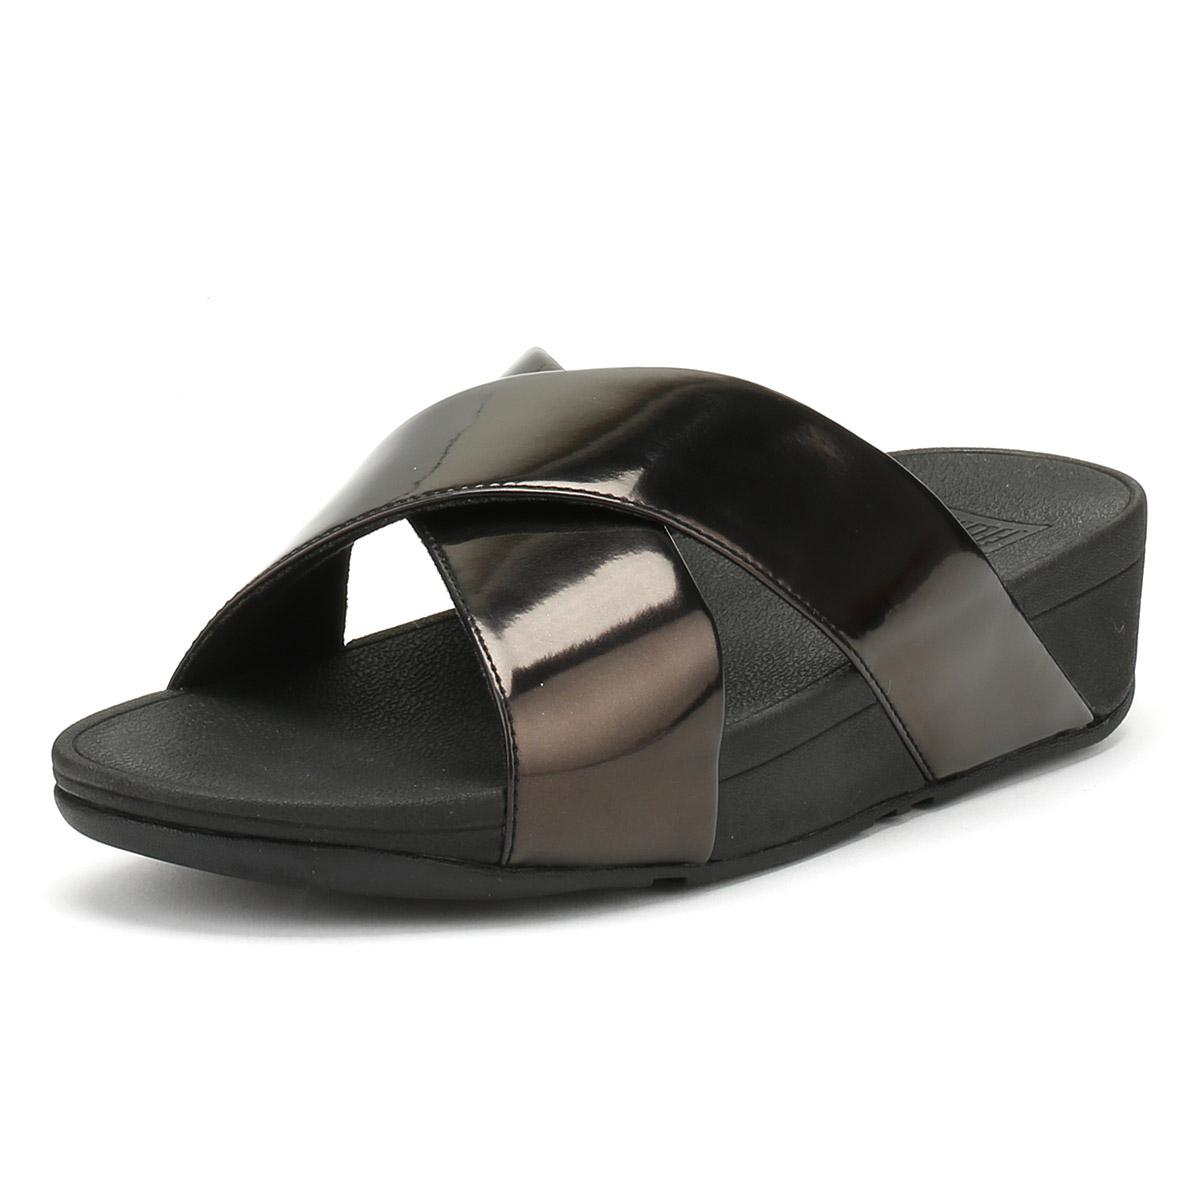 406f4caaa Lyst - Fitflop Womens Black Mirror Lulutm Cross Slide Sandals in Black